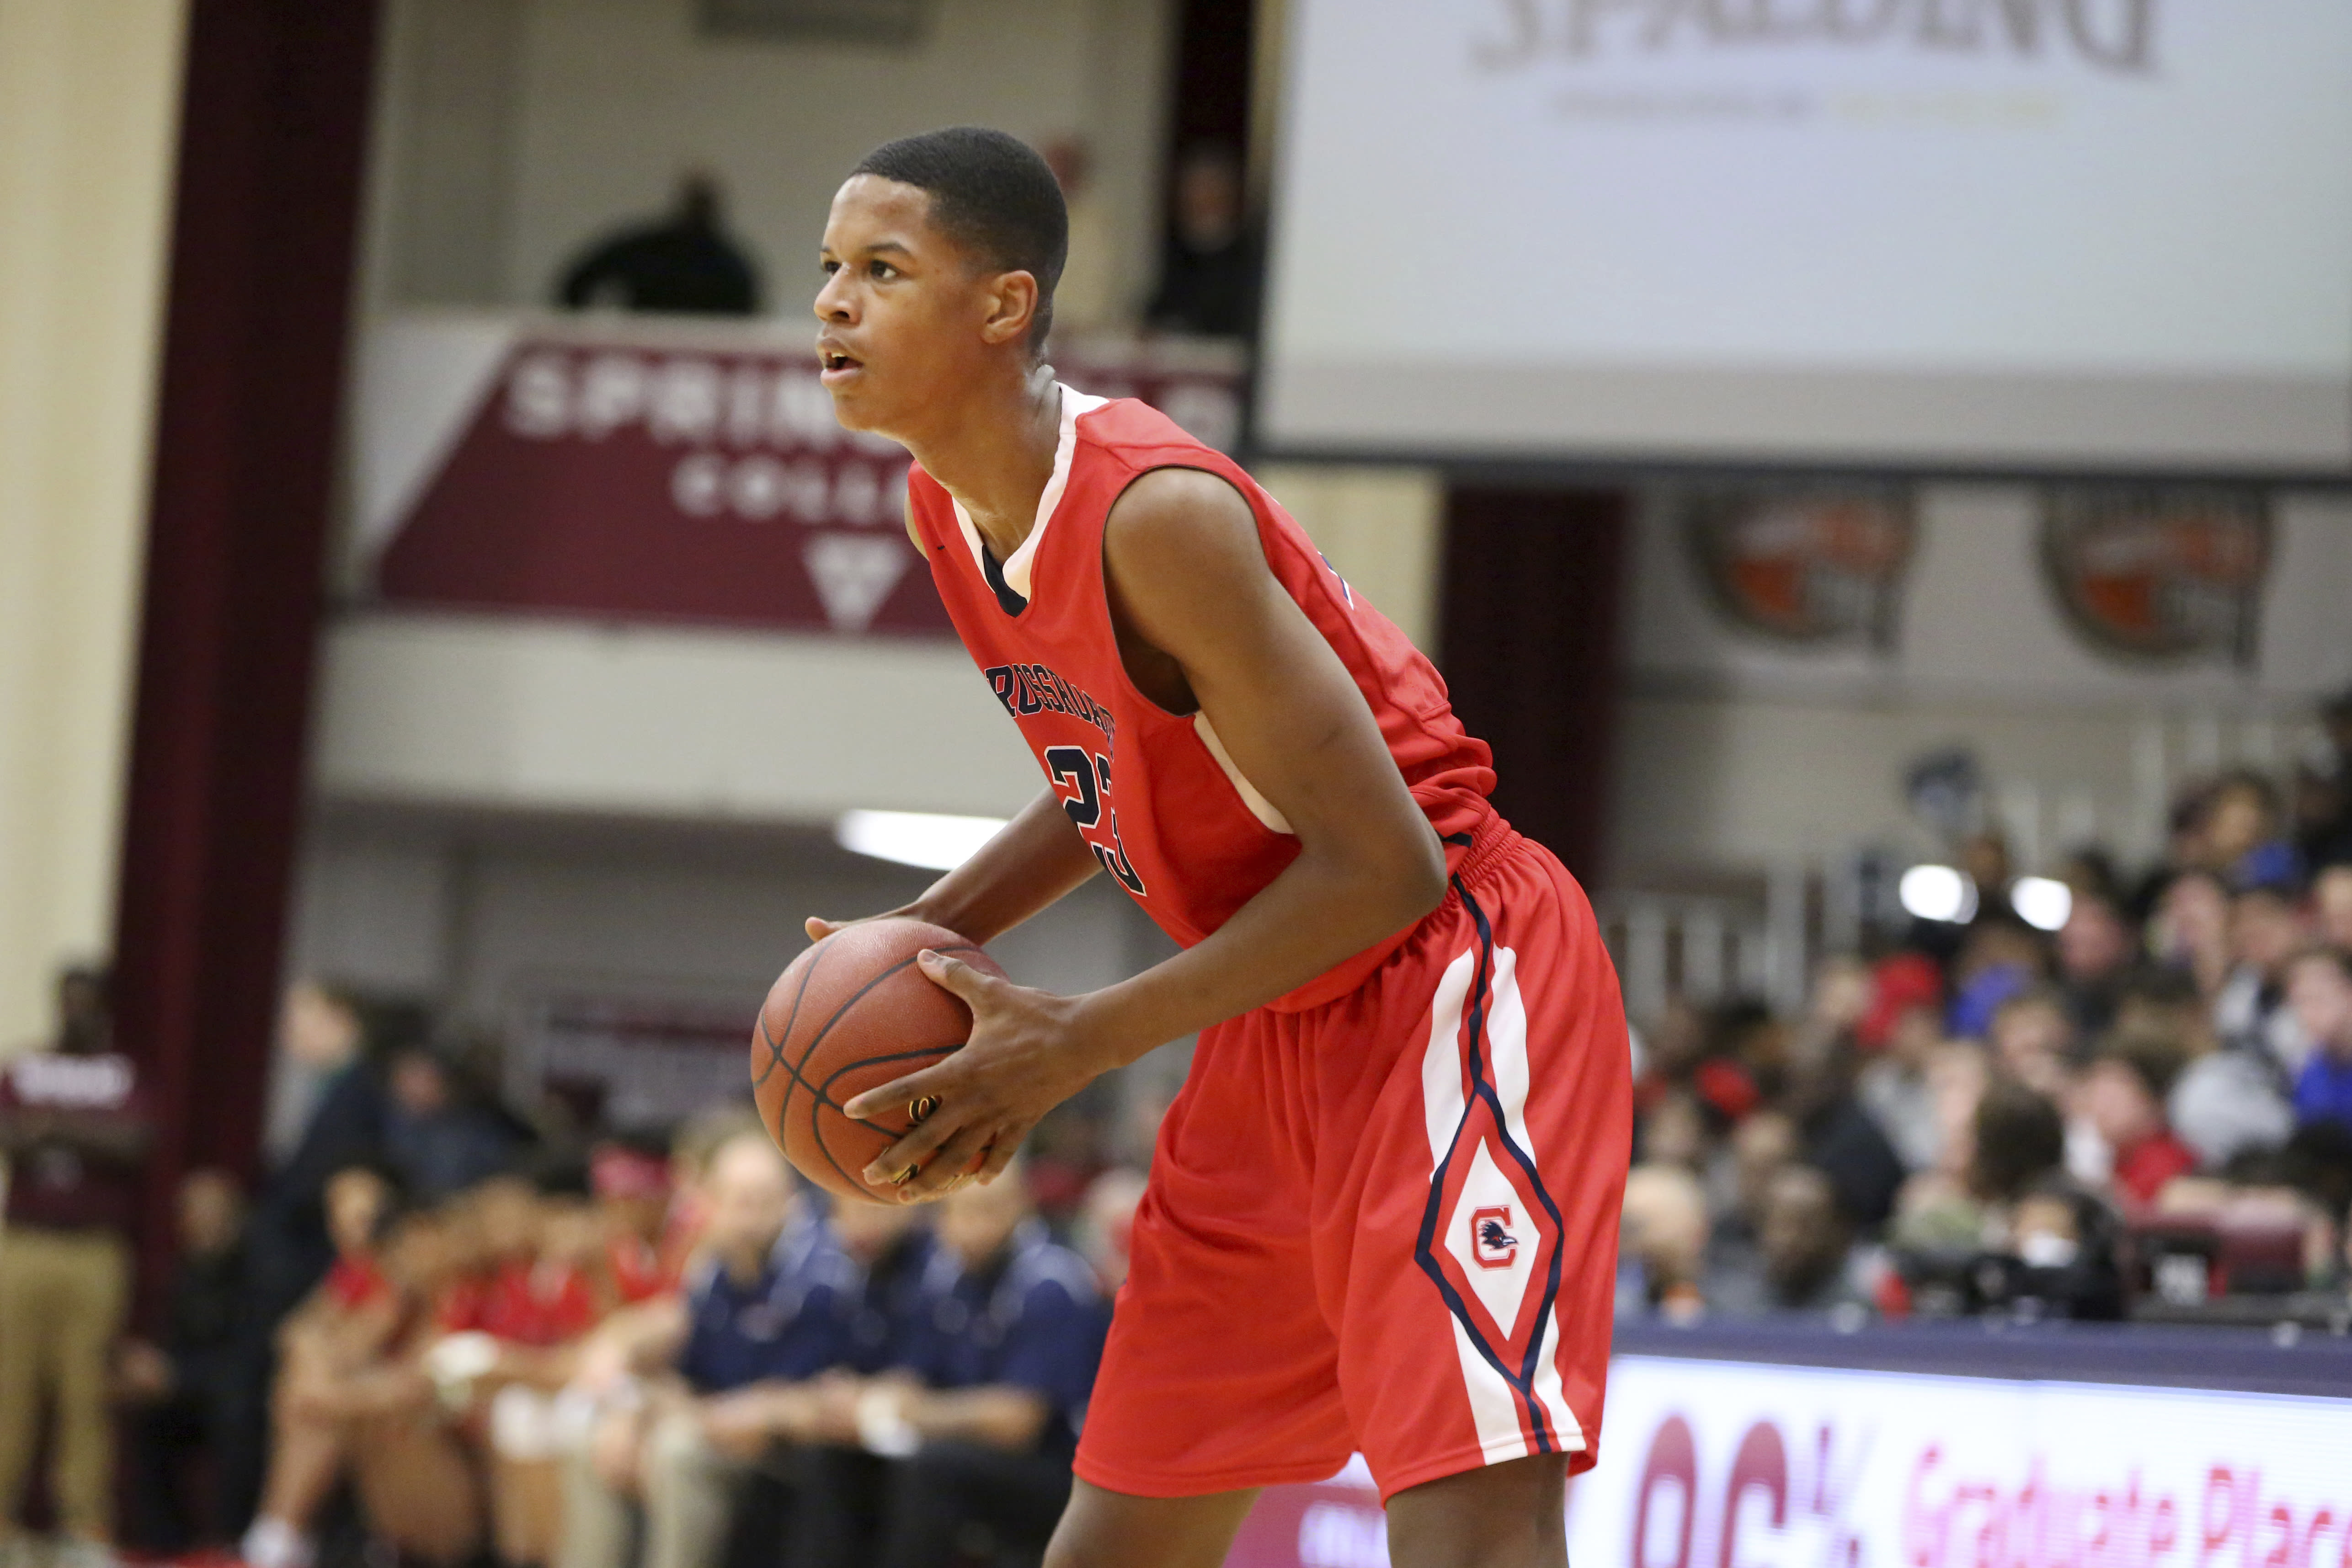 Shareef ONeal the son of Shaquille had the gamewinning basket for Crossroads on Thursday night in a 6260 win over Beverly Hills It was part of a